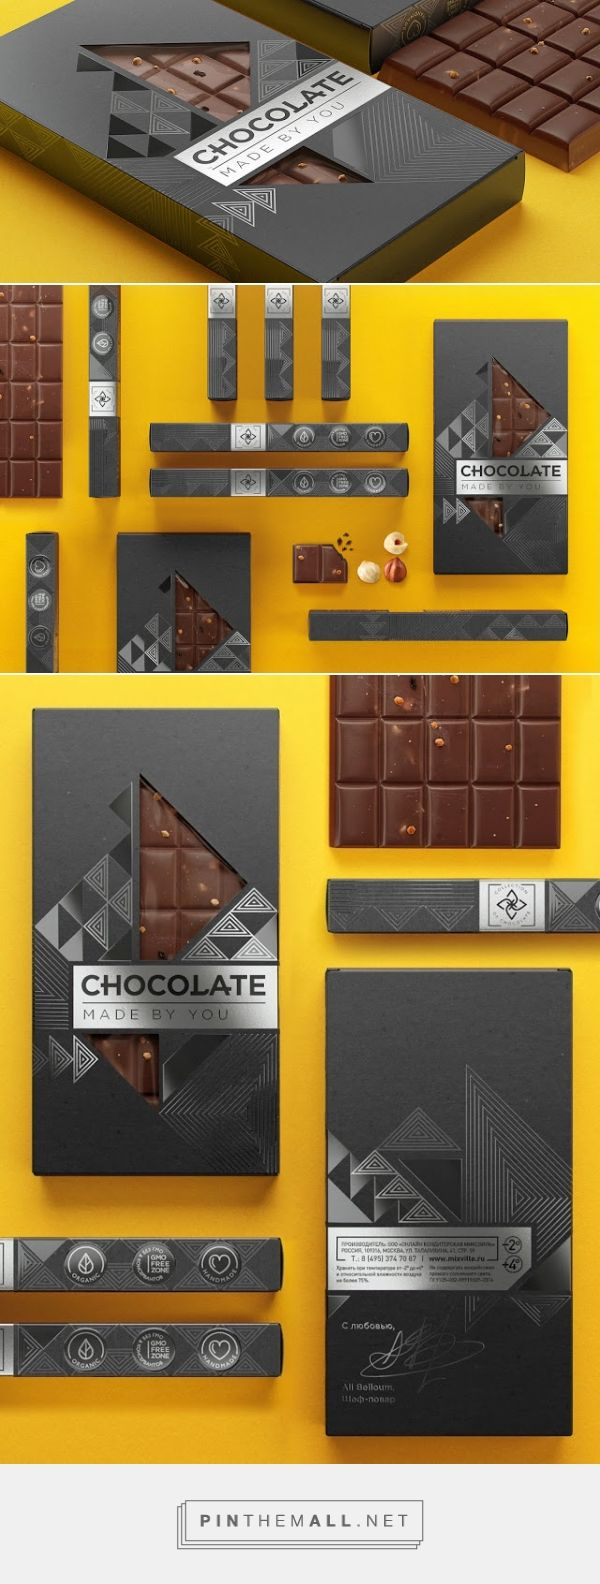 #Chocolate Made By You #packaging designed by BimBom - http://www.packagingoftheworld.com/2015/08/chocolate-made-by-you.html - created via http://pinthemall.net